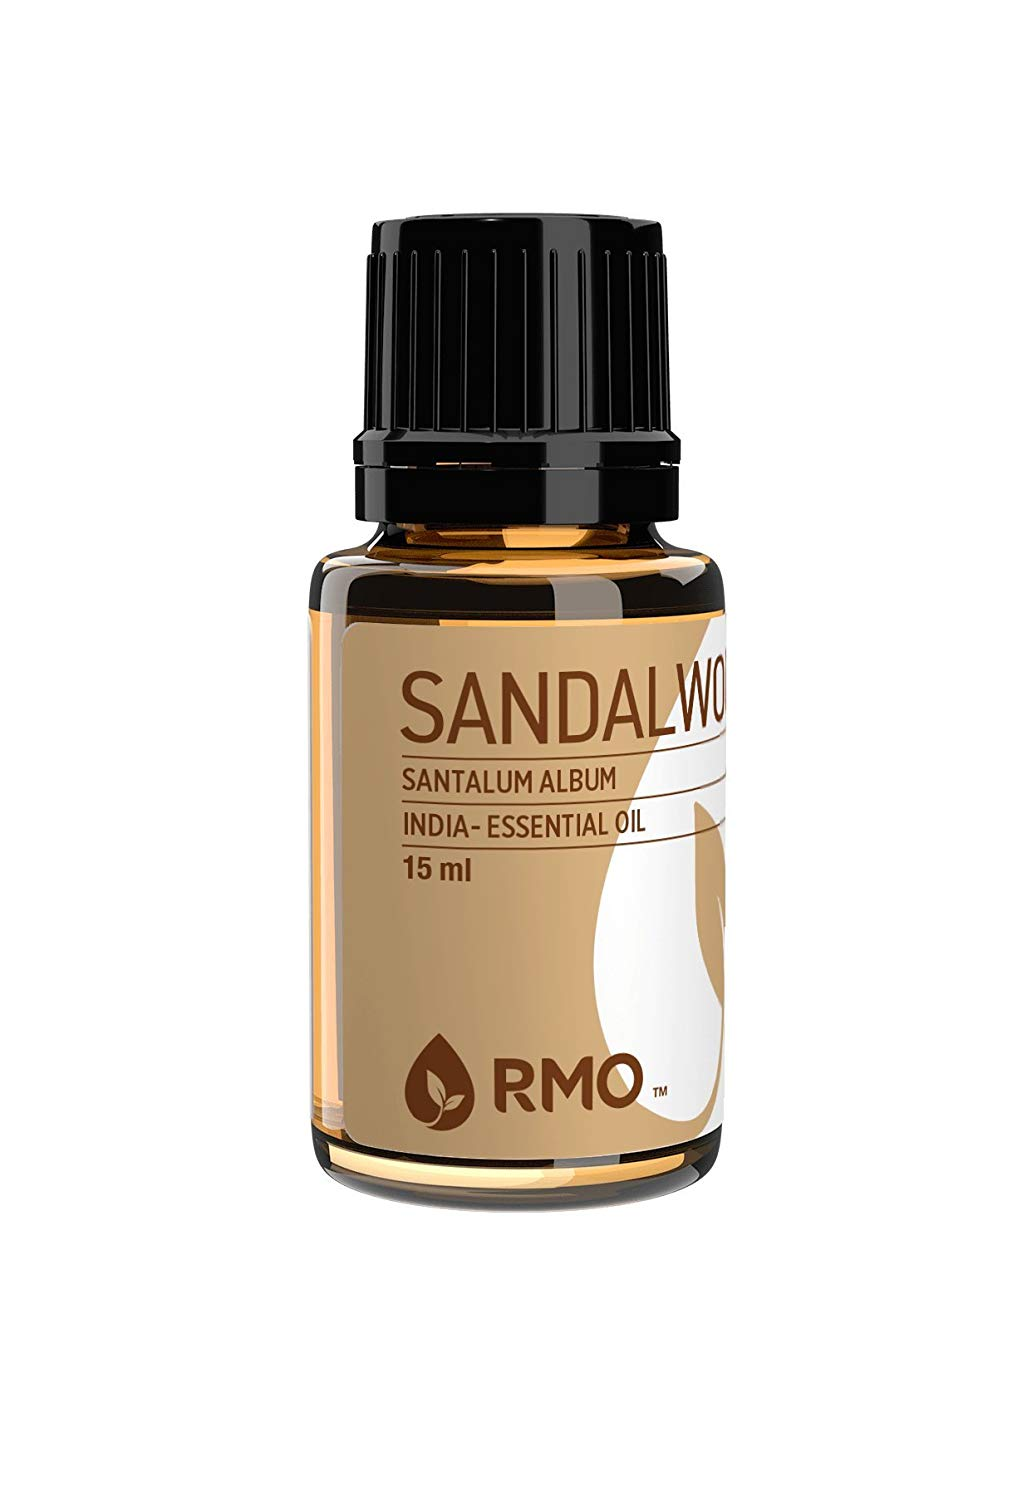 Sandalwood oil benefits for mind and body